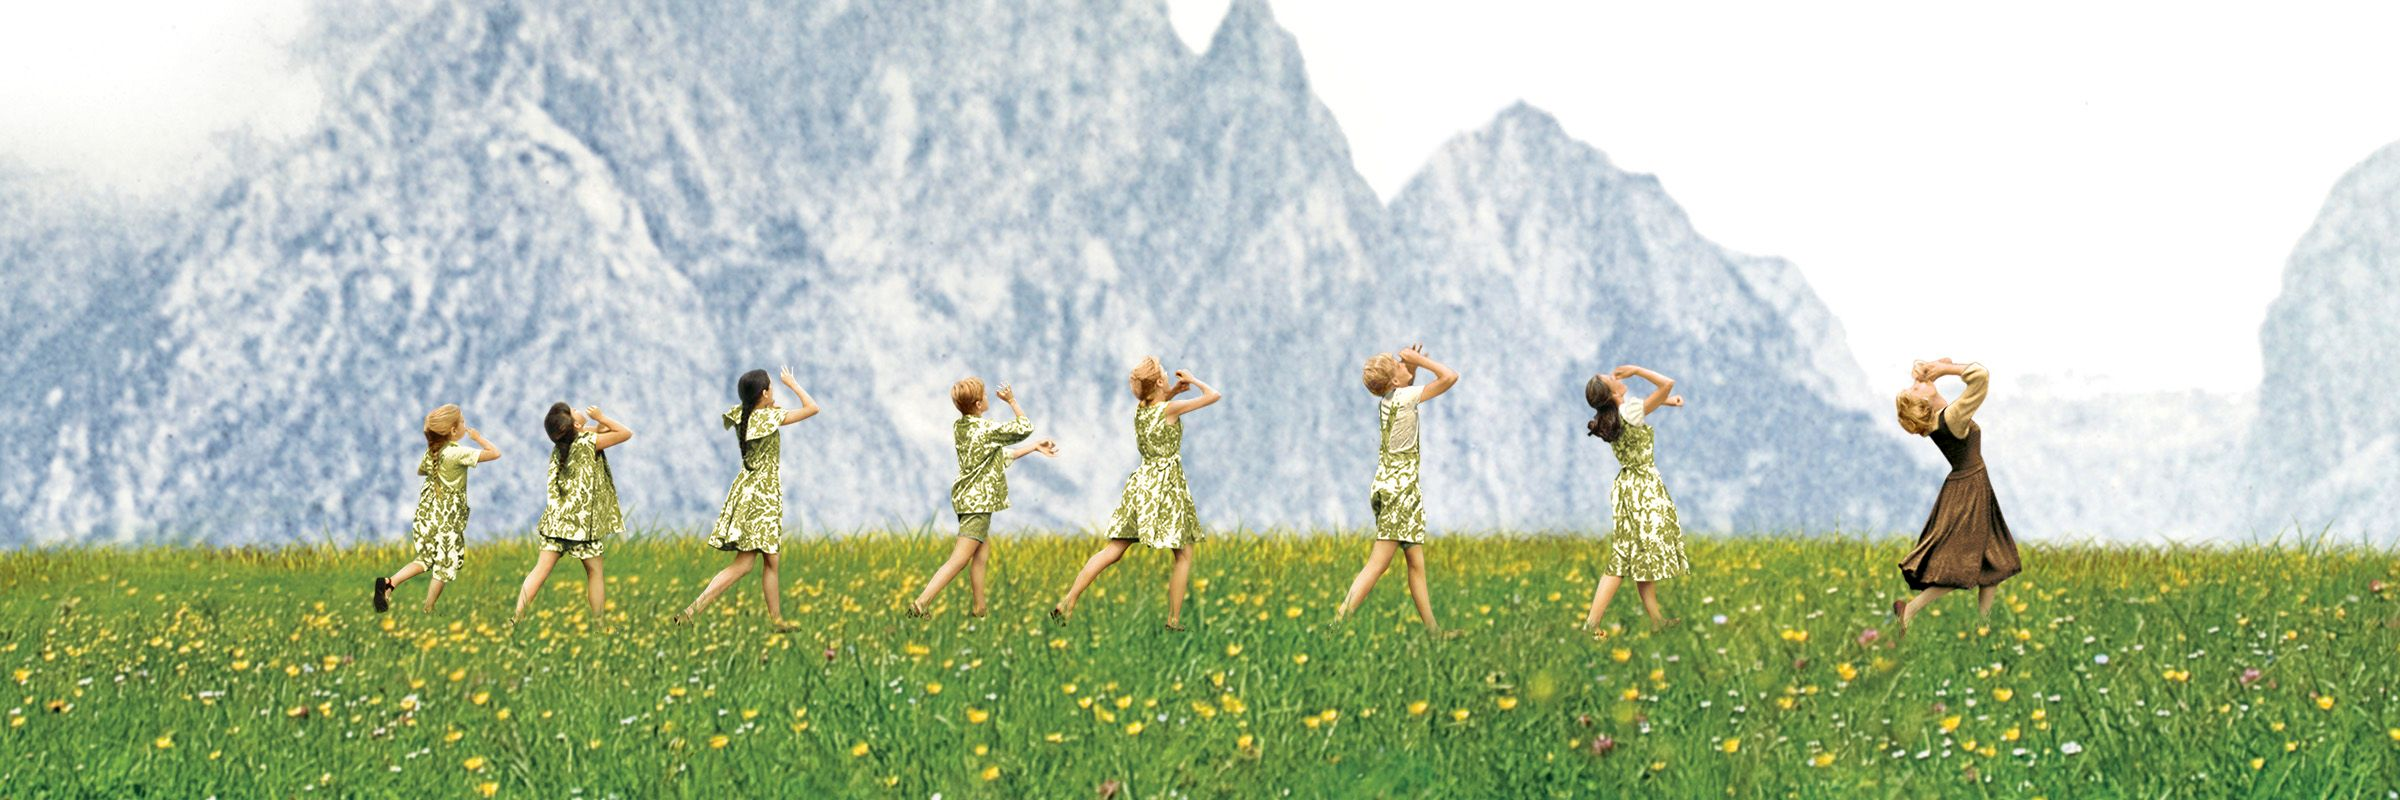 The Sound of Music | Full Movie | Movies Anywhere